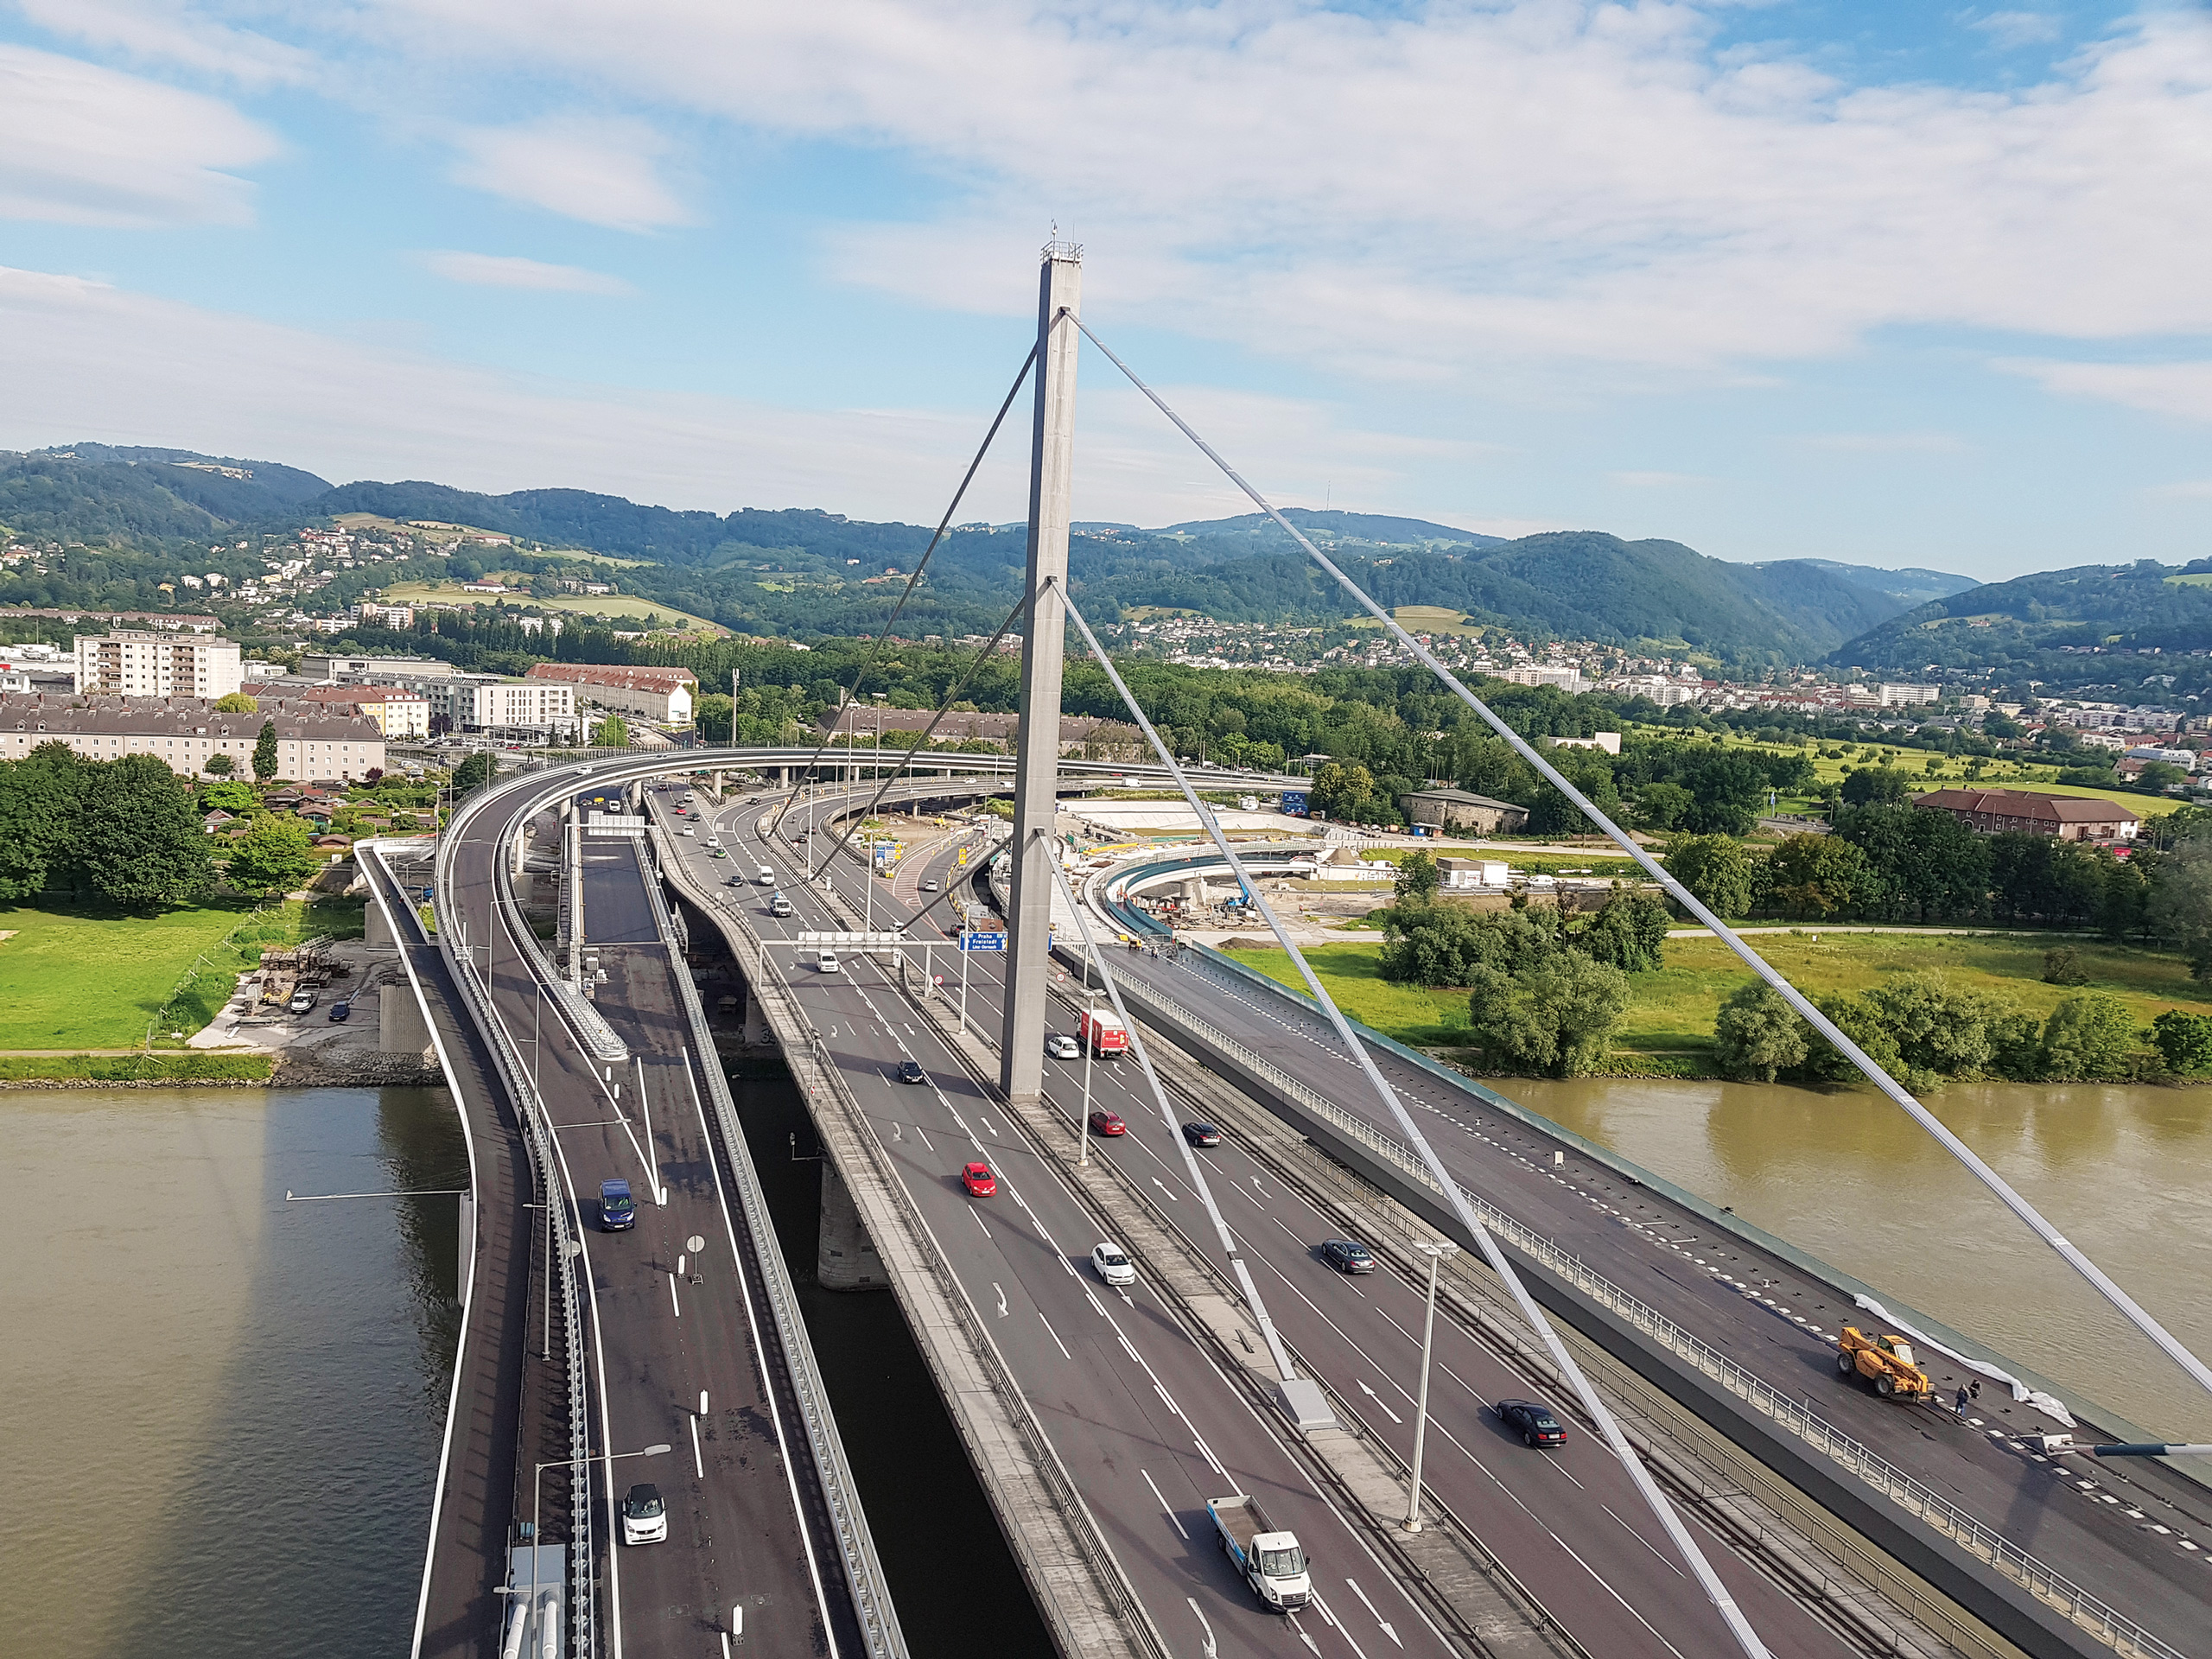 Safety expansion, Voest Bridge Linz, Austria 1